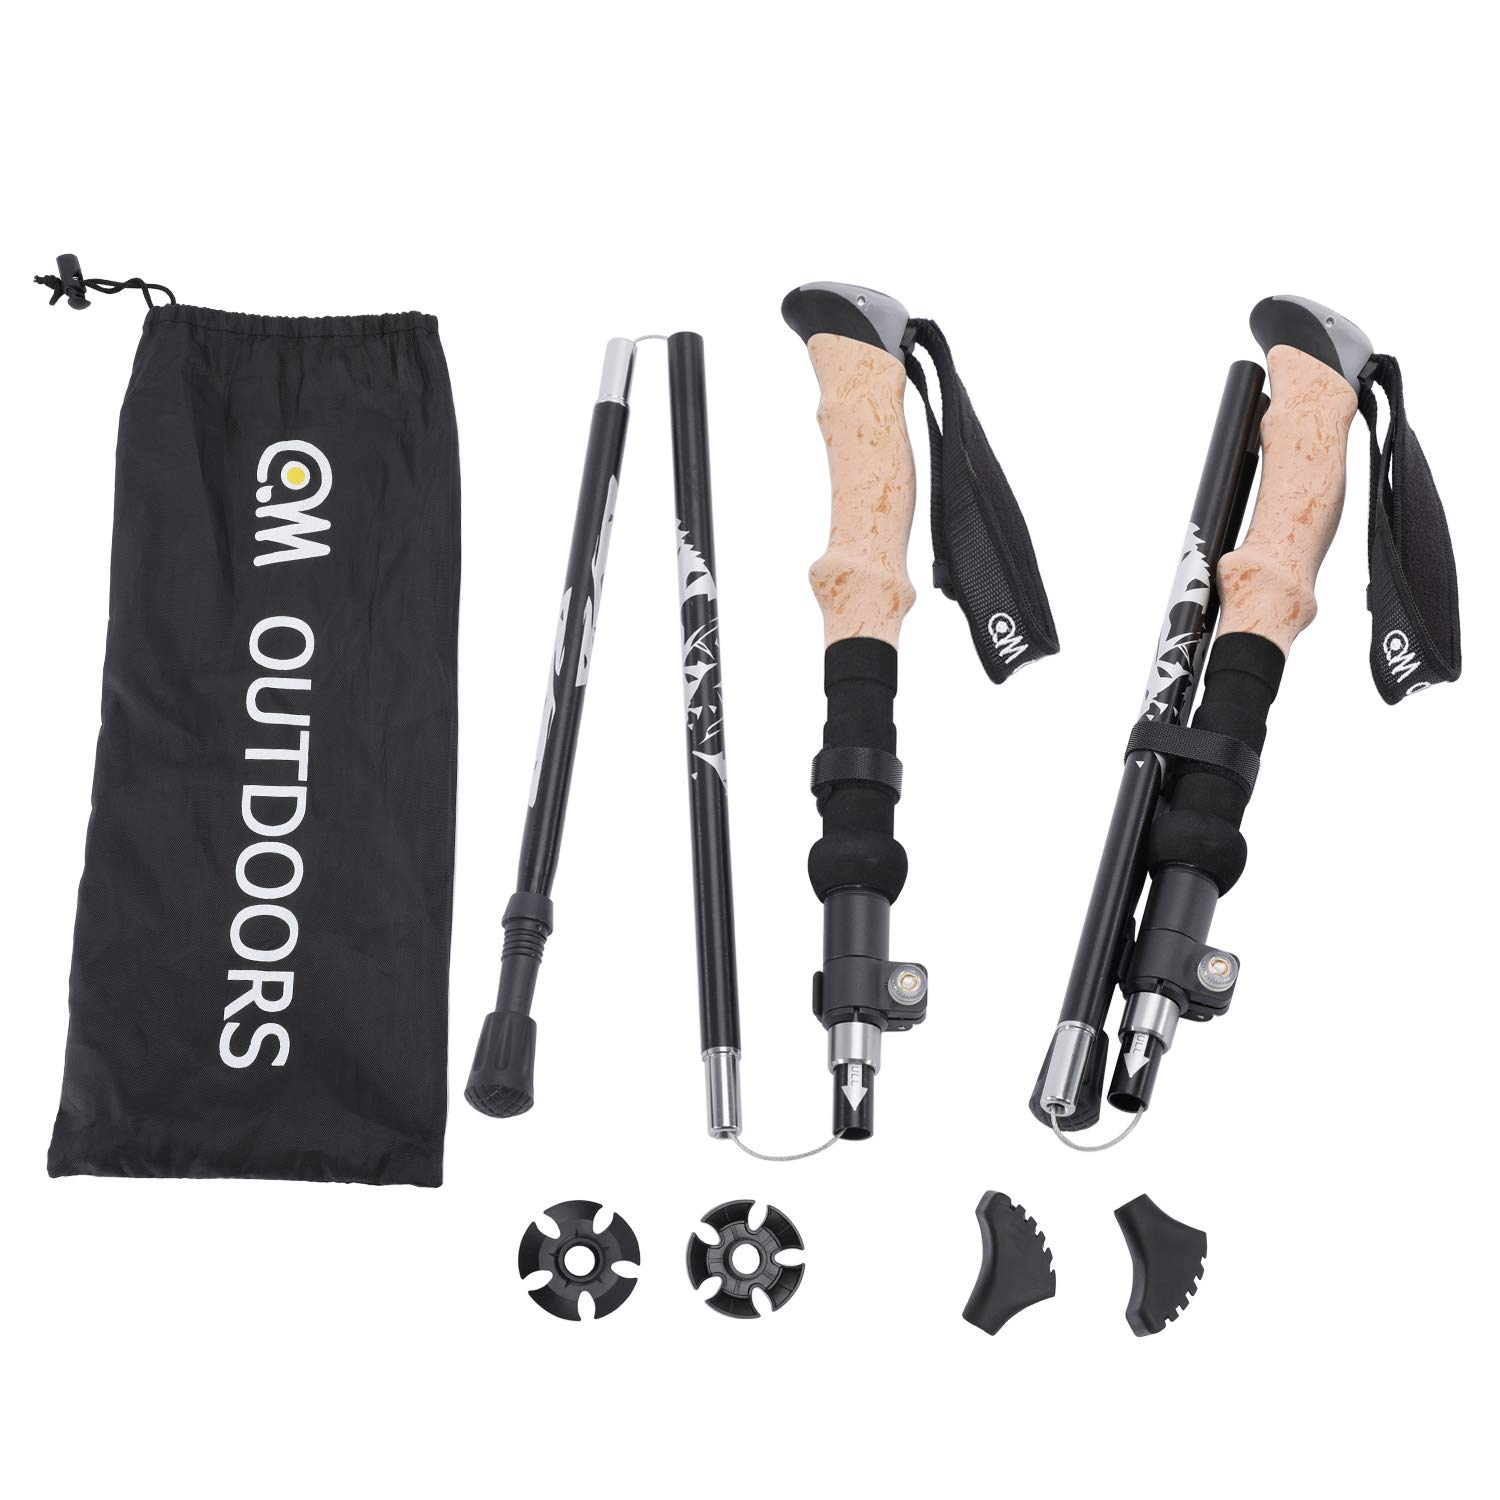 QM OUTDOORS Walking Stick,Fit Men and Women Whose Height Between 5' 1'' to 6' 3'', One Pair Lightweight Potable Collapsible Stick for Hiking, Mountaineering & Camping - (Black) by QM OUTDOORS